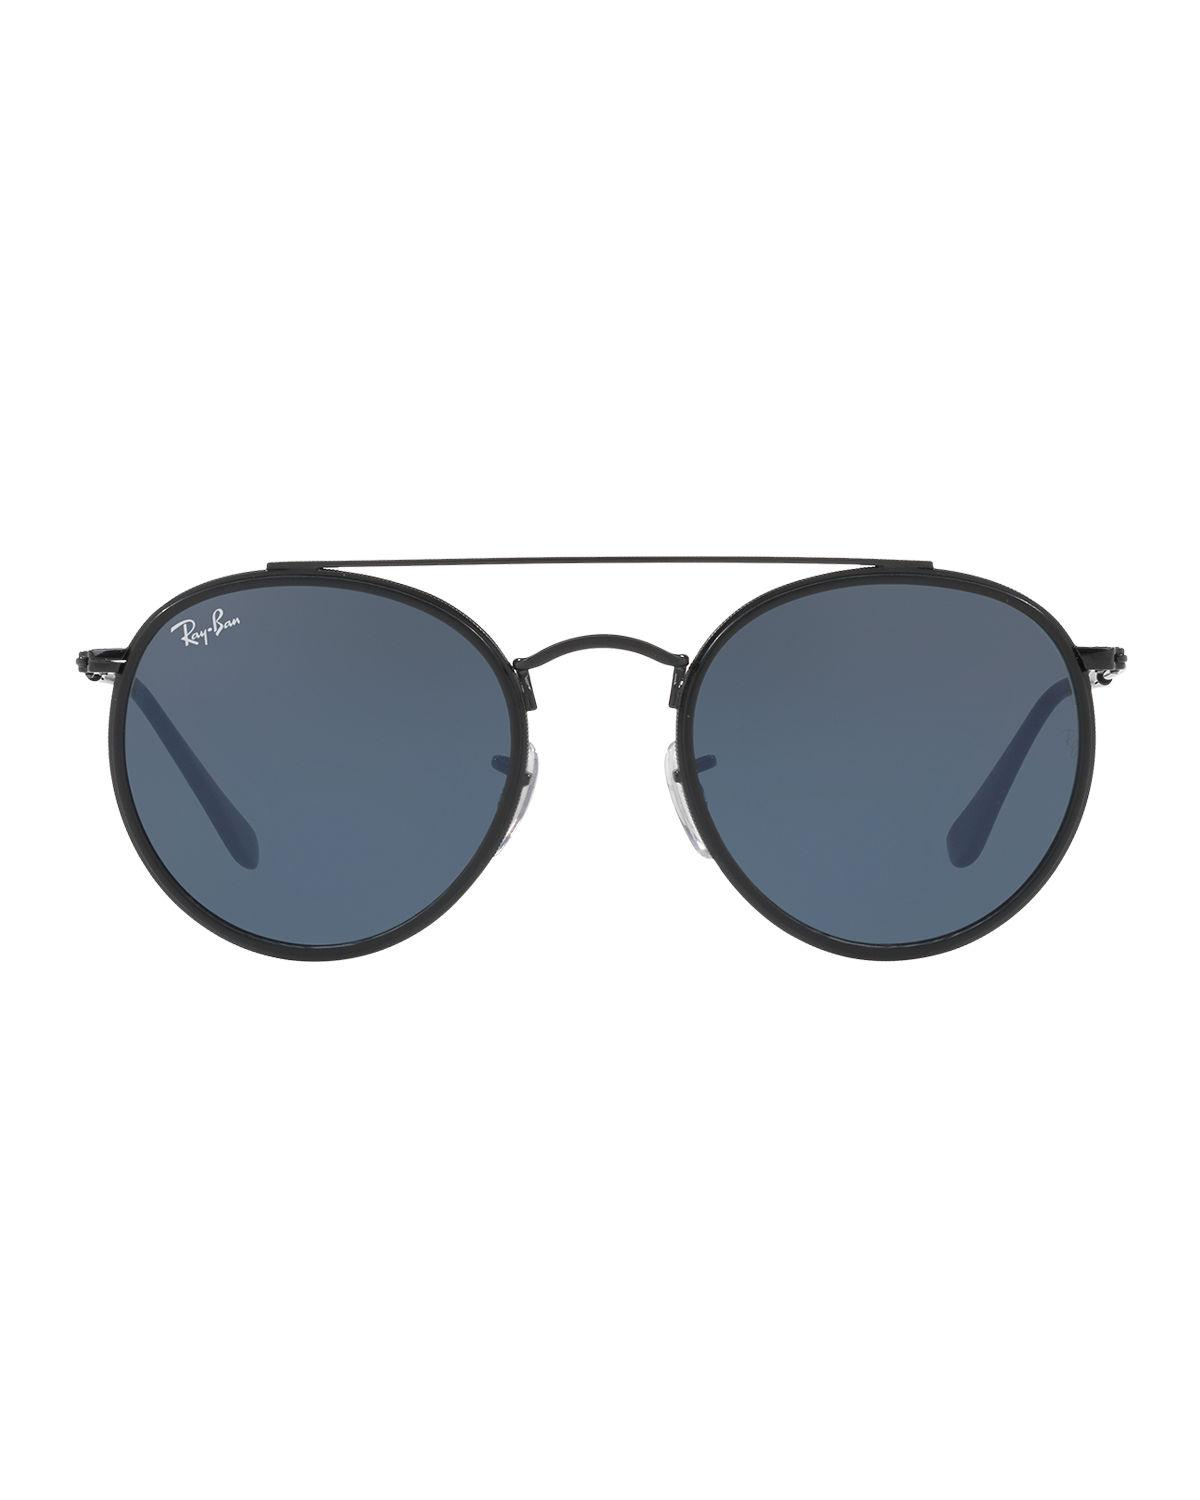 41b3c8eccf6 Lyst - Ray-Ban Men s Rb3647 Round Double-bridge Sunglasses in Black for Men  - Save 2%